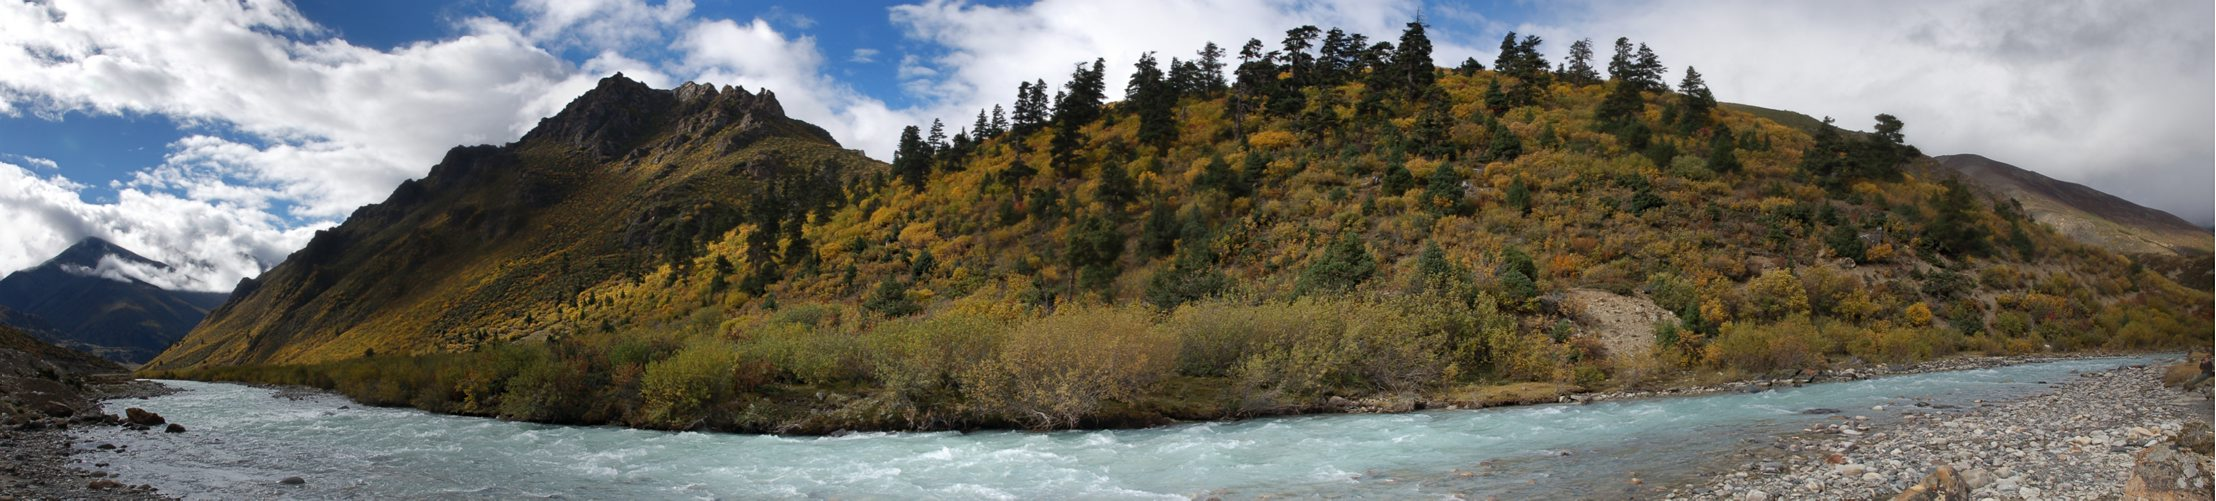 China, Tibet, Pasho > Rawu, 3950m, autumn colours